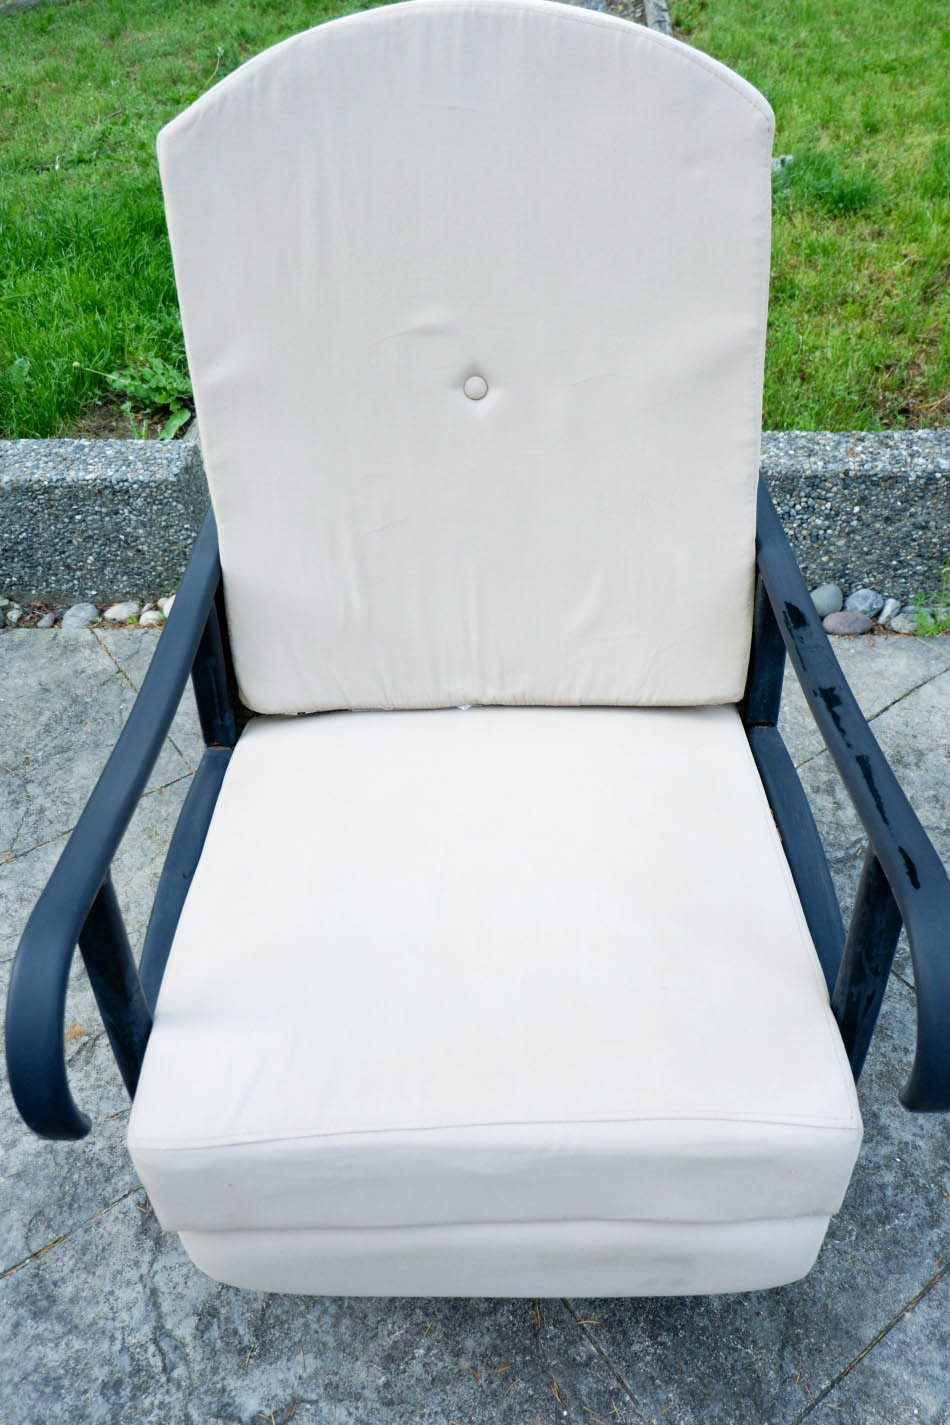 backyard chair